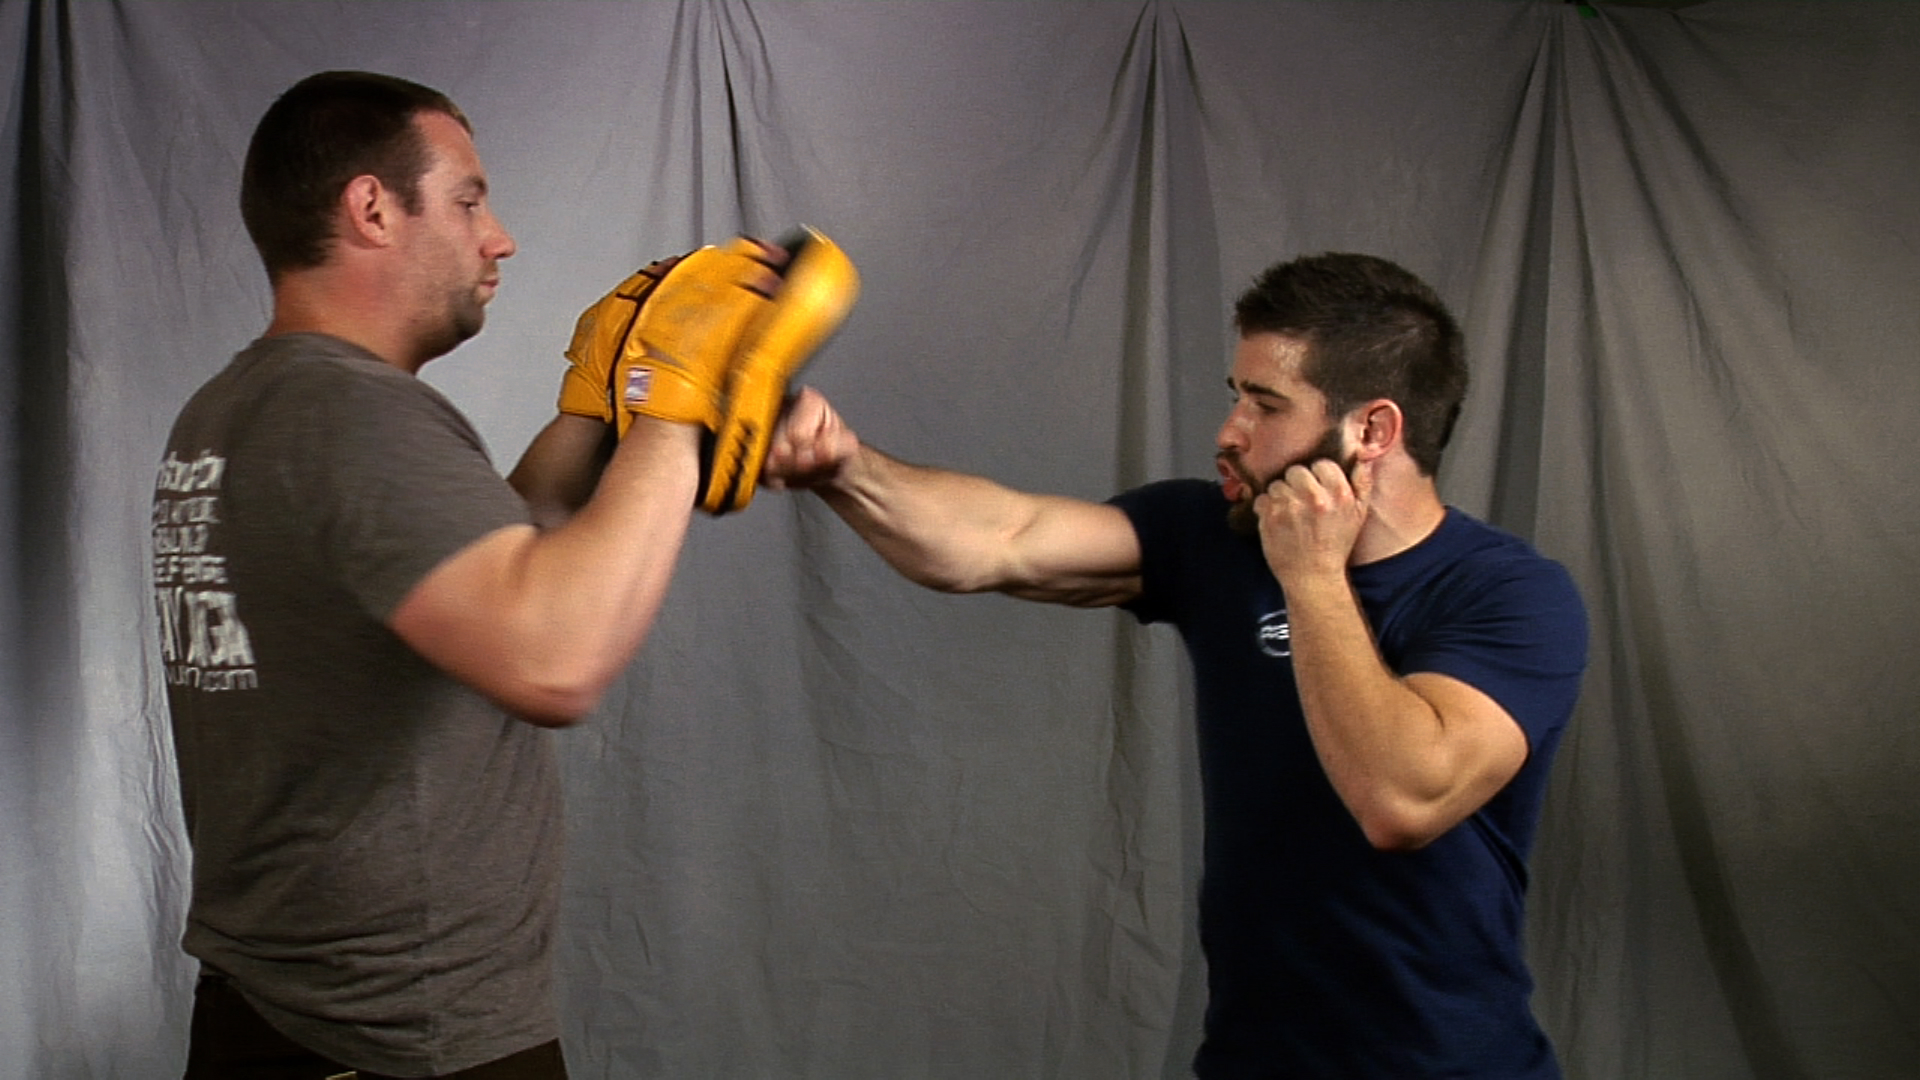 Krav Maga Striking for Self-Defense Training - Self Defense Videos